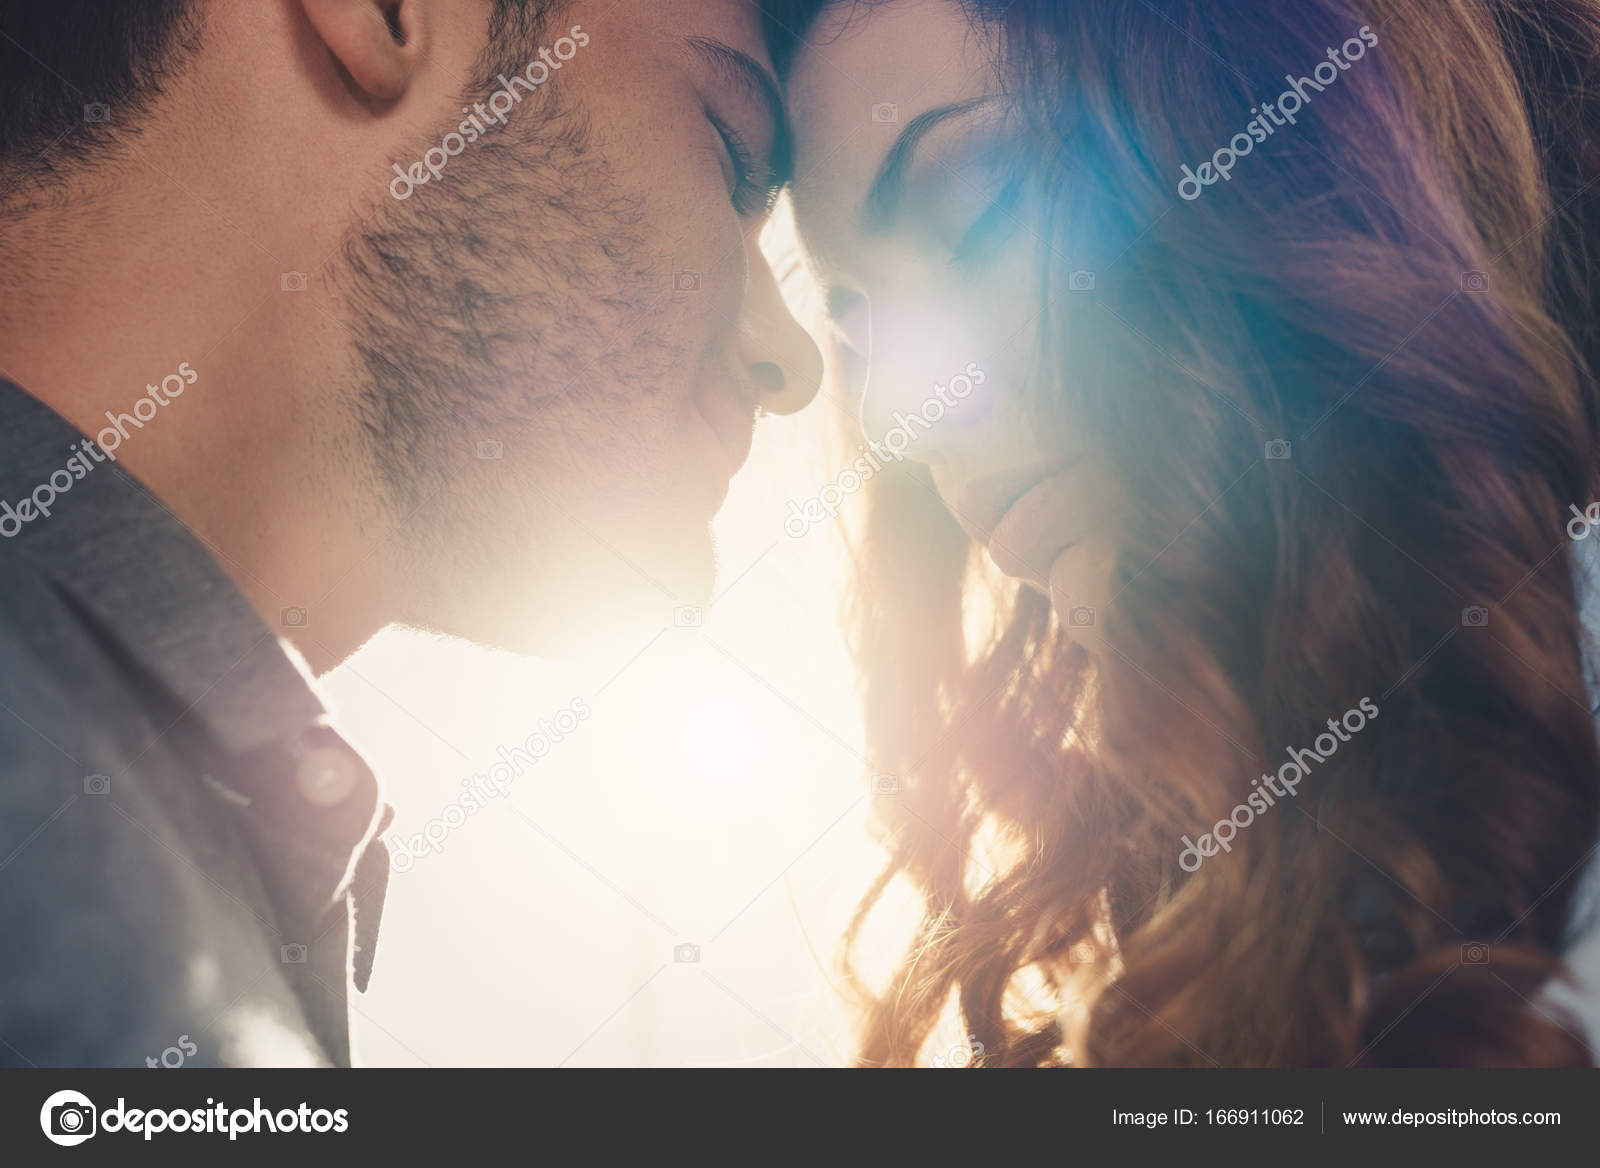 Romantic Couple Pictures Images Stock Photos Depositphotos